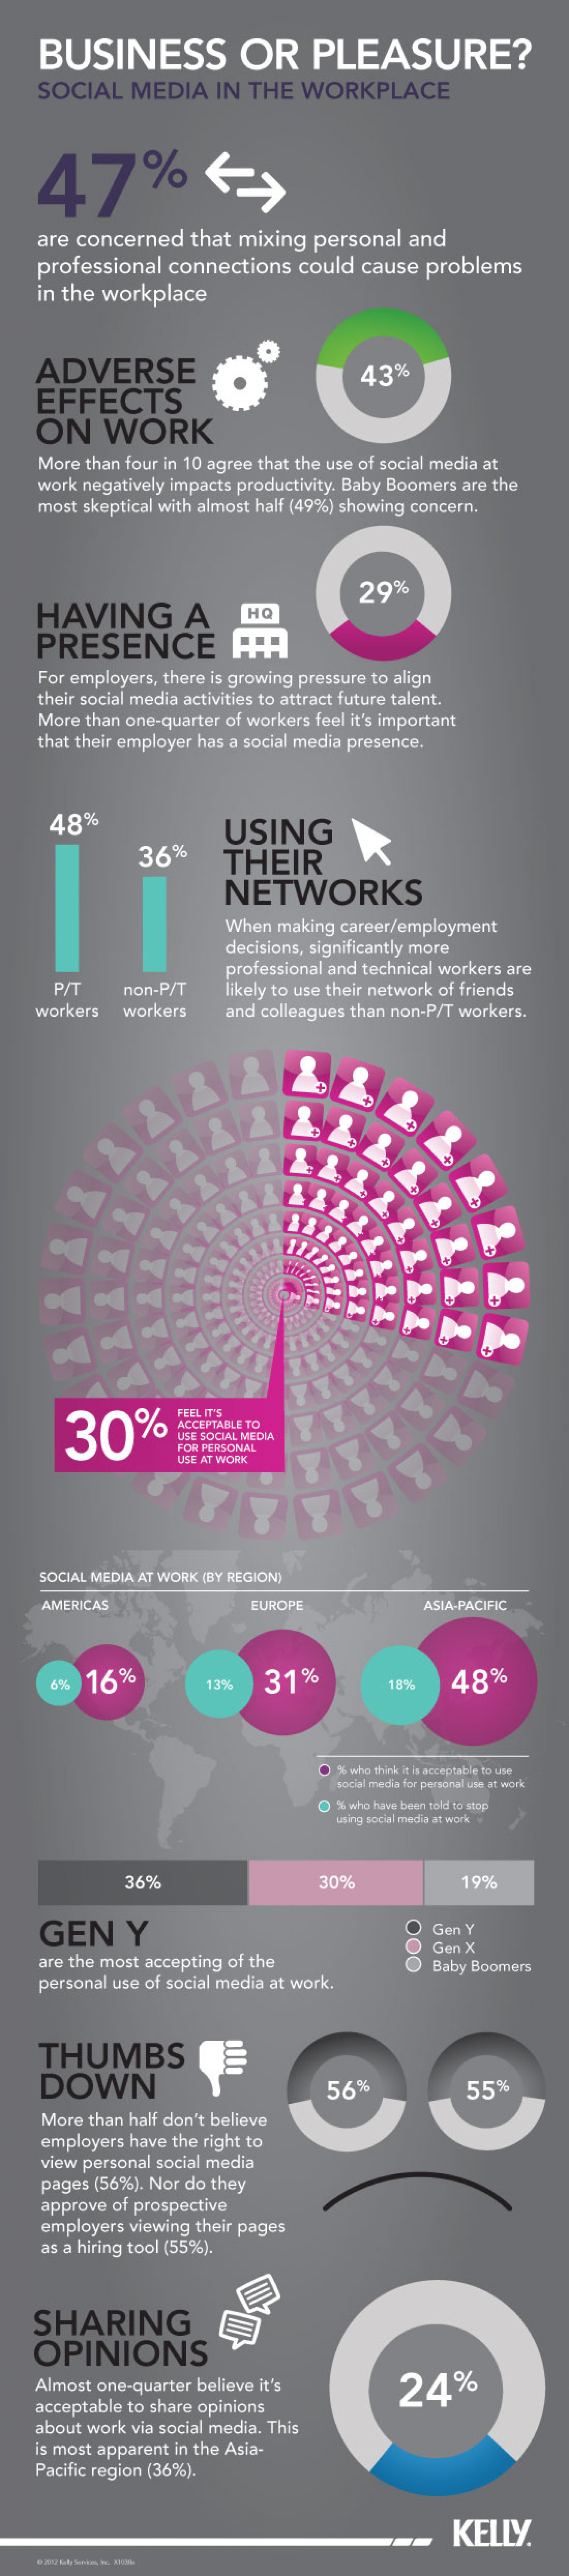 Social Media in the Workplace Infographic